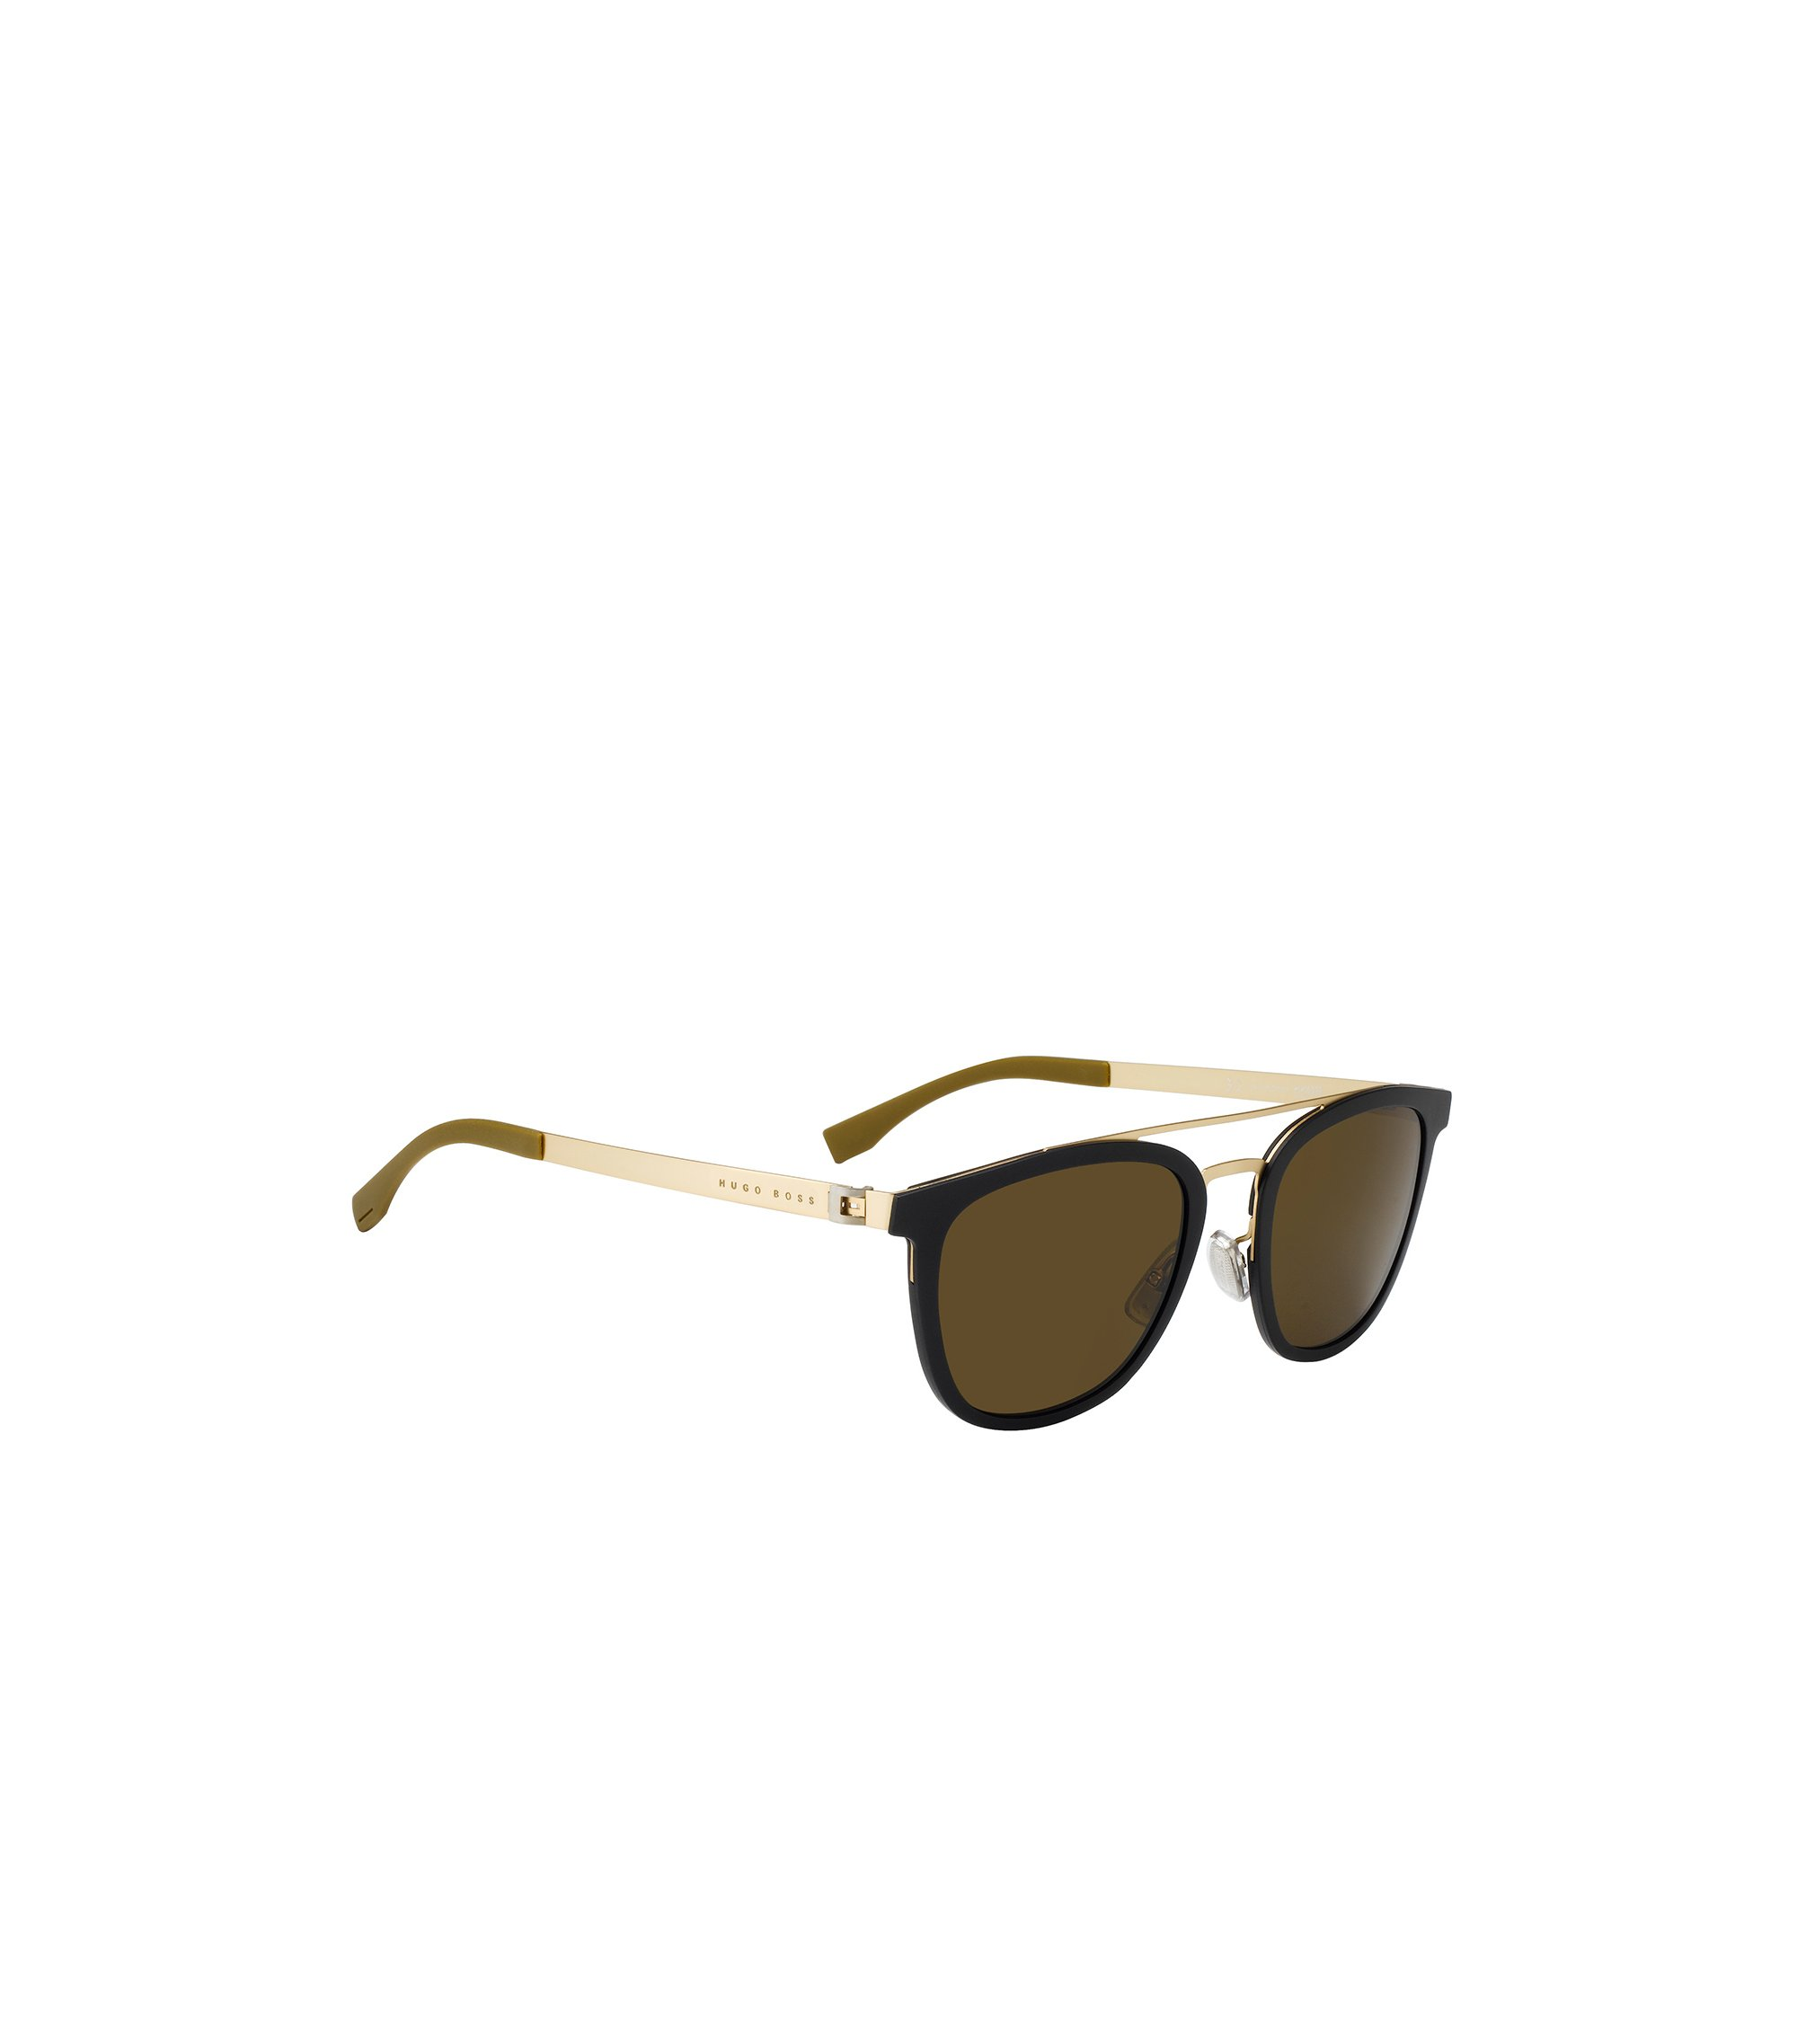 Gold Tone Stainless Steel Round Sunglasses | BOSS 0838, Assorted-Pre-Pack